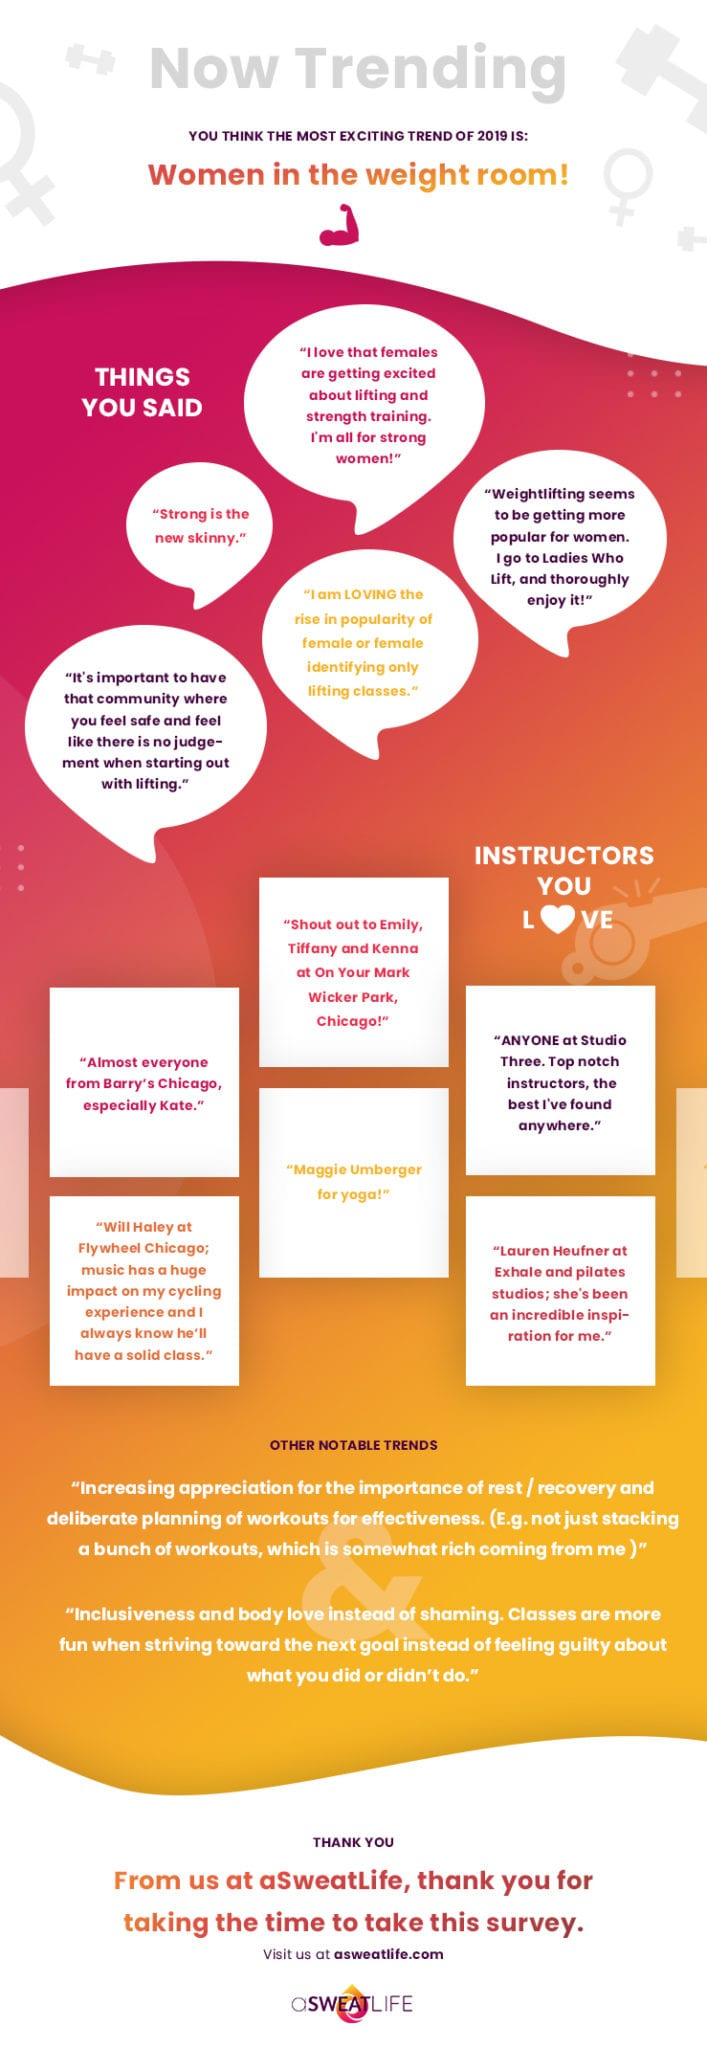 ASL_Infographic_0004_Block 05 - Trends and Instructor Shout Outs FINAL